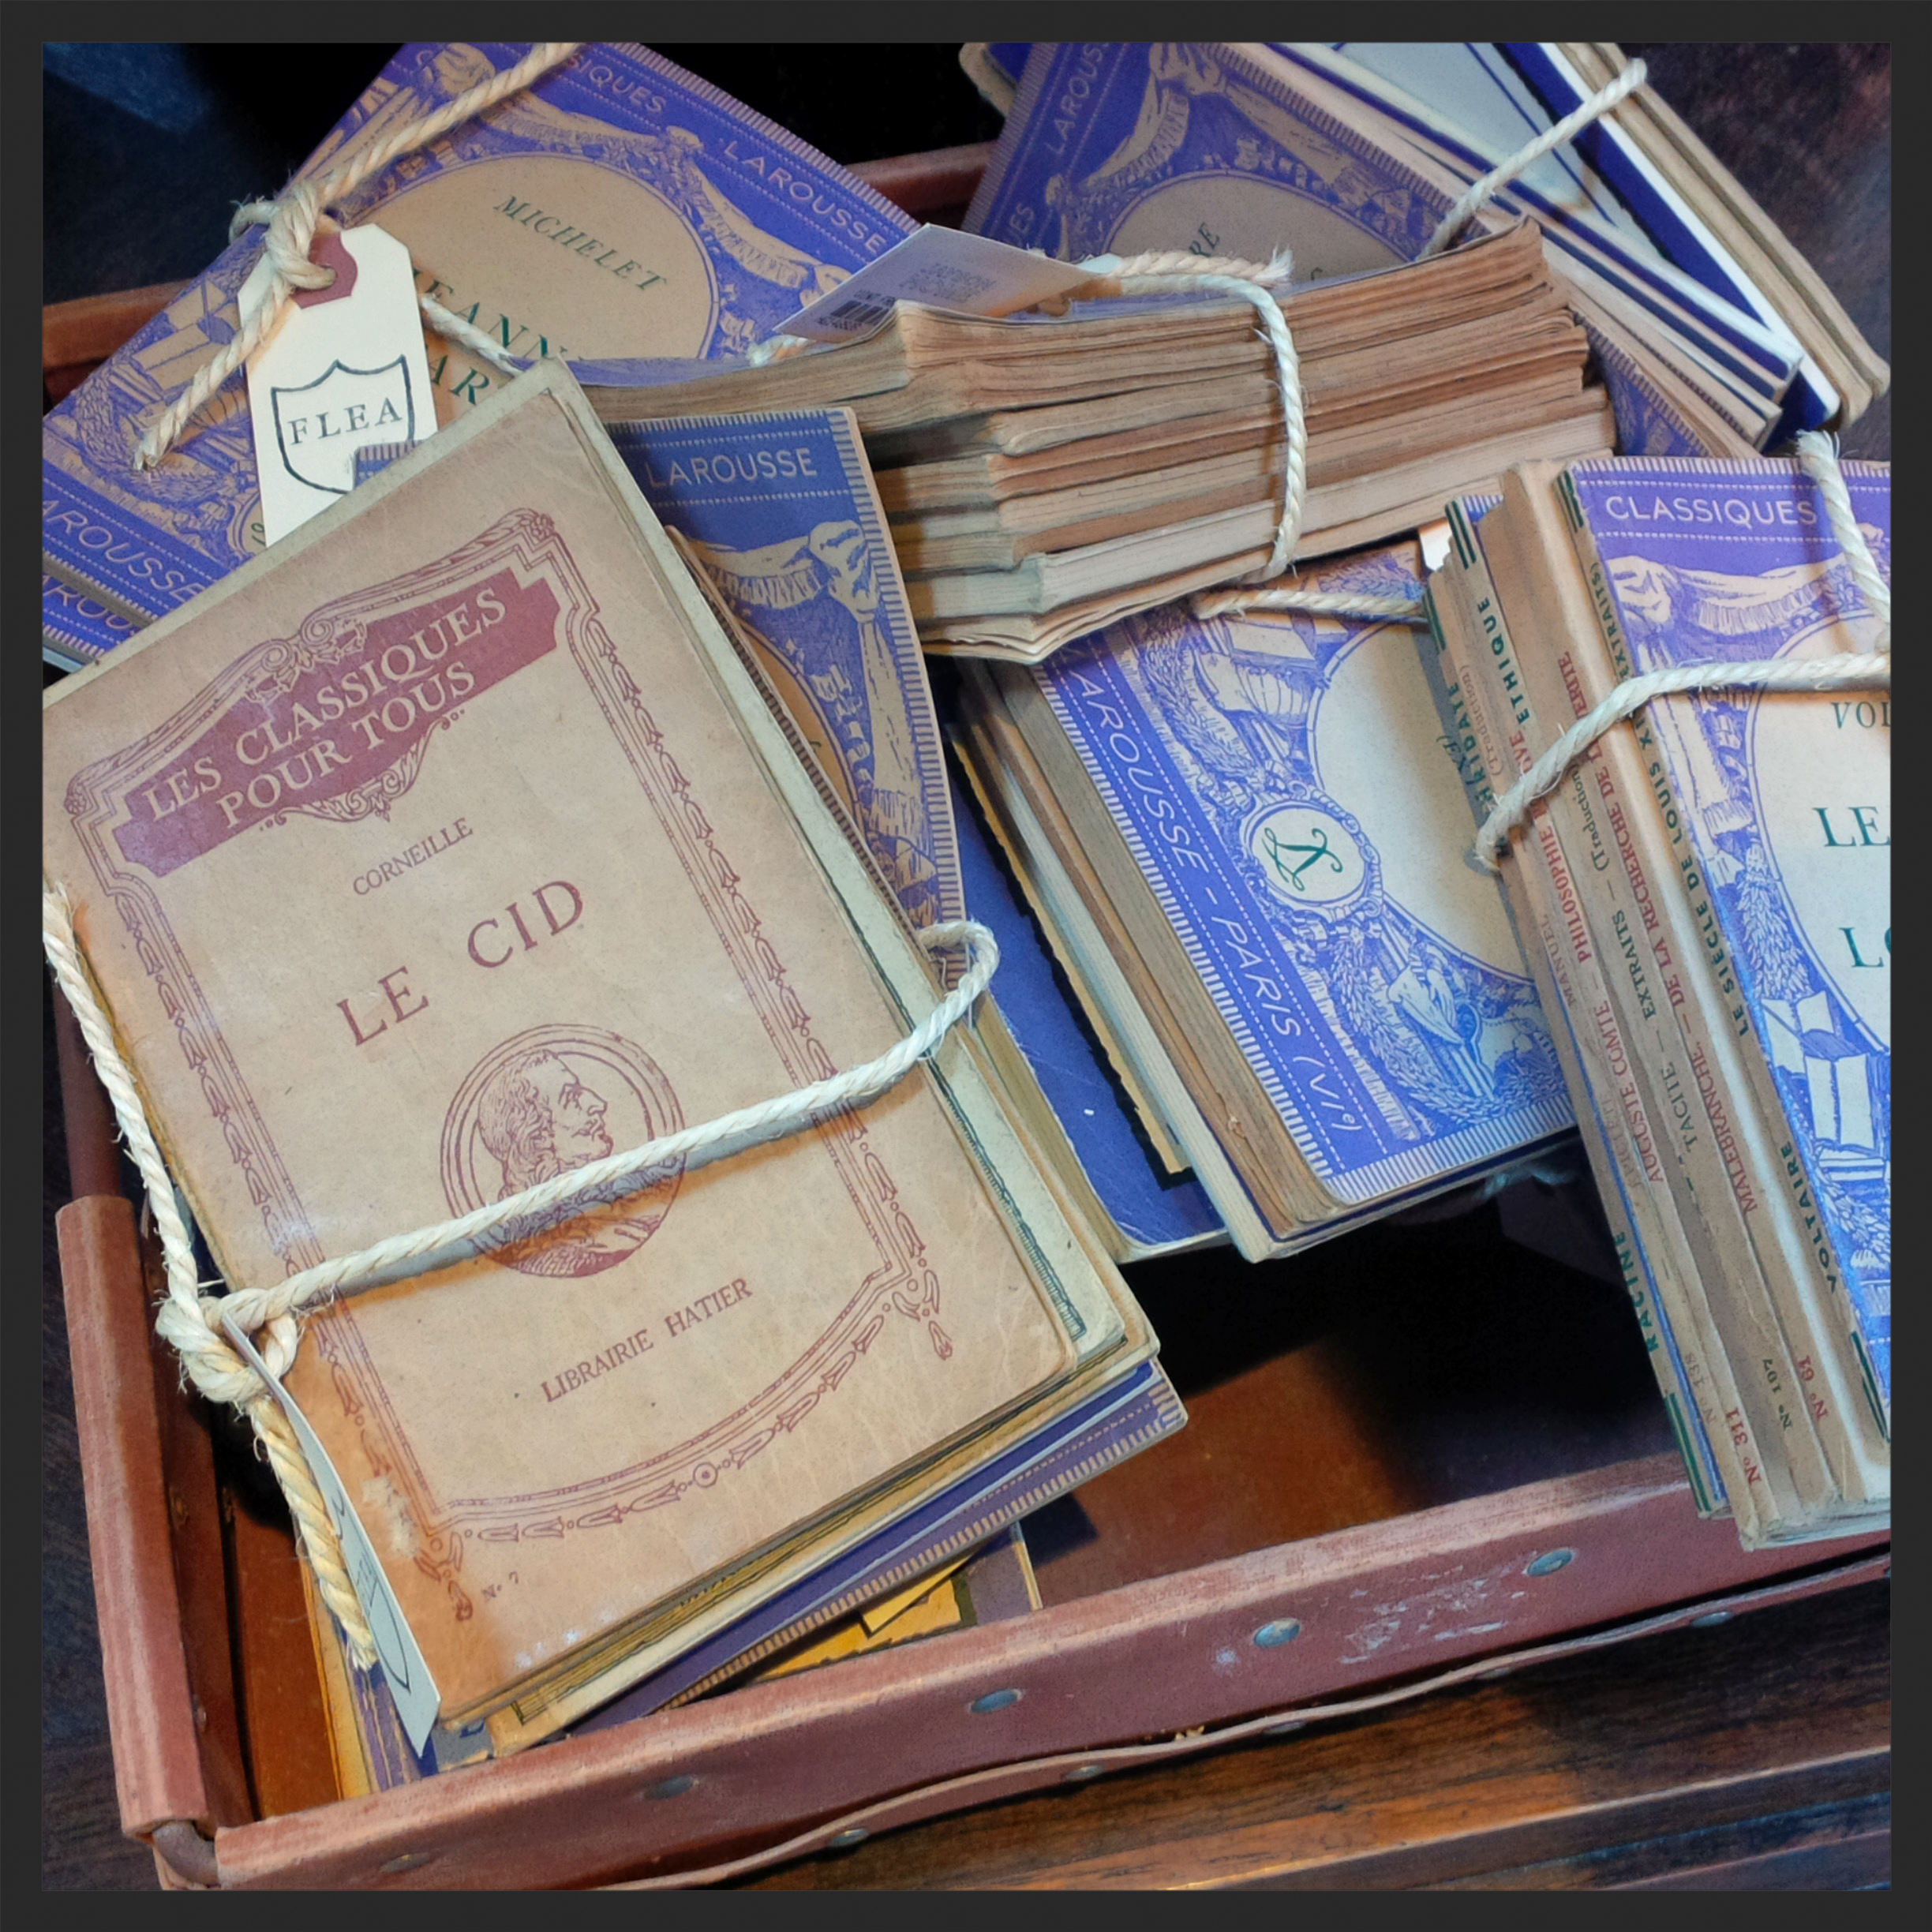 I love stacks of vintage French books - on a tray, on a cupboard, well anywhere!